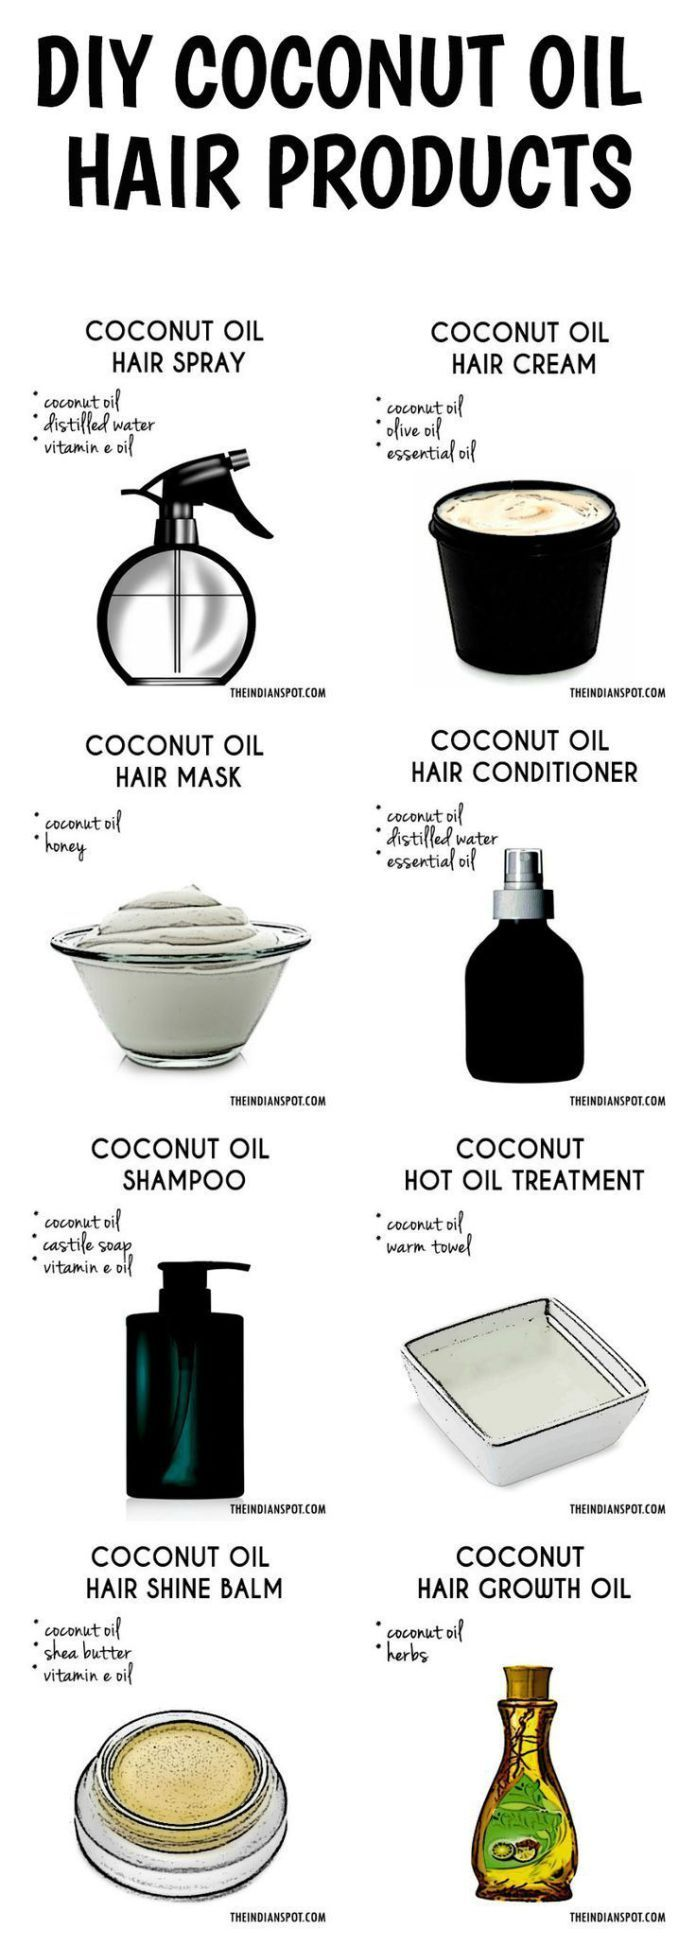 Best DIY Hair Masks And Face Masks : DIY Coconut Oil Hair Products